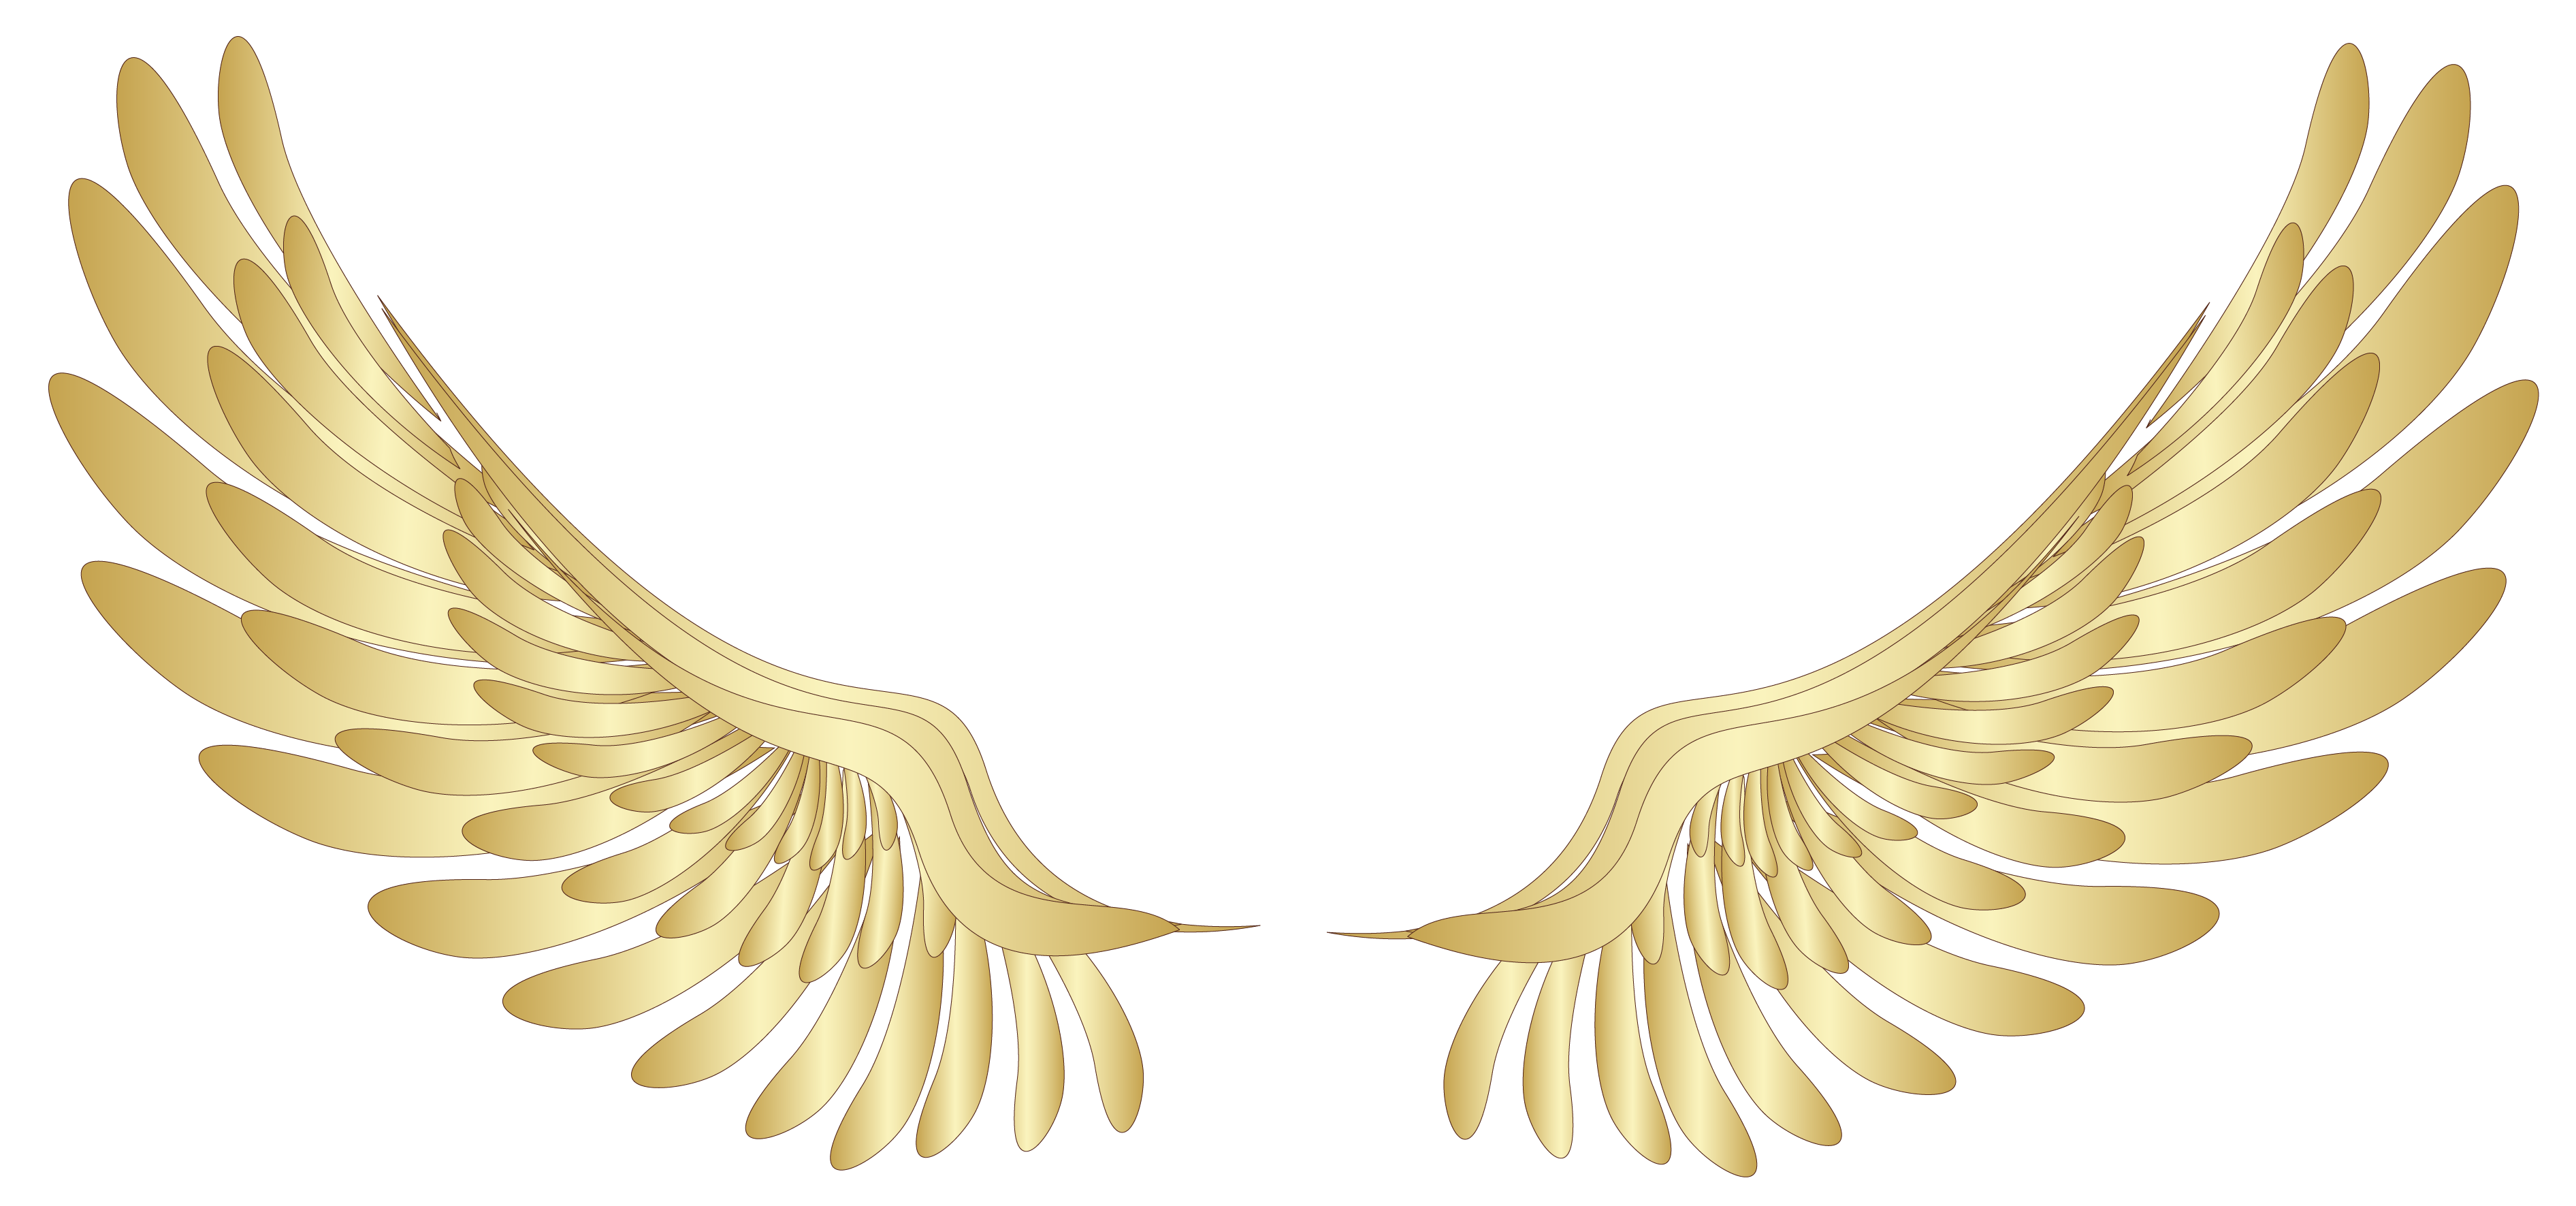 Phone clipart yellow. Wings clipground cliparts